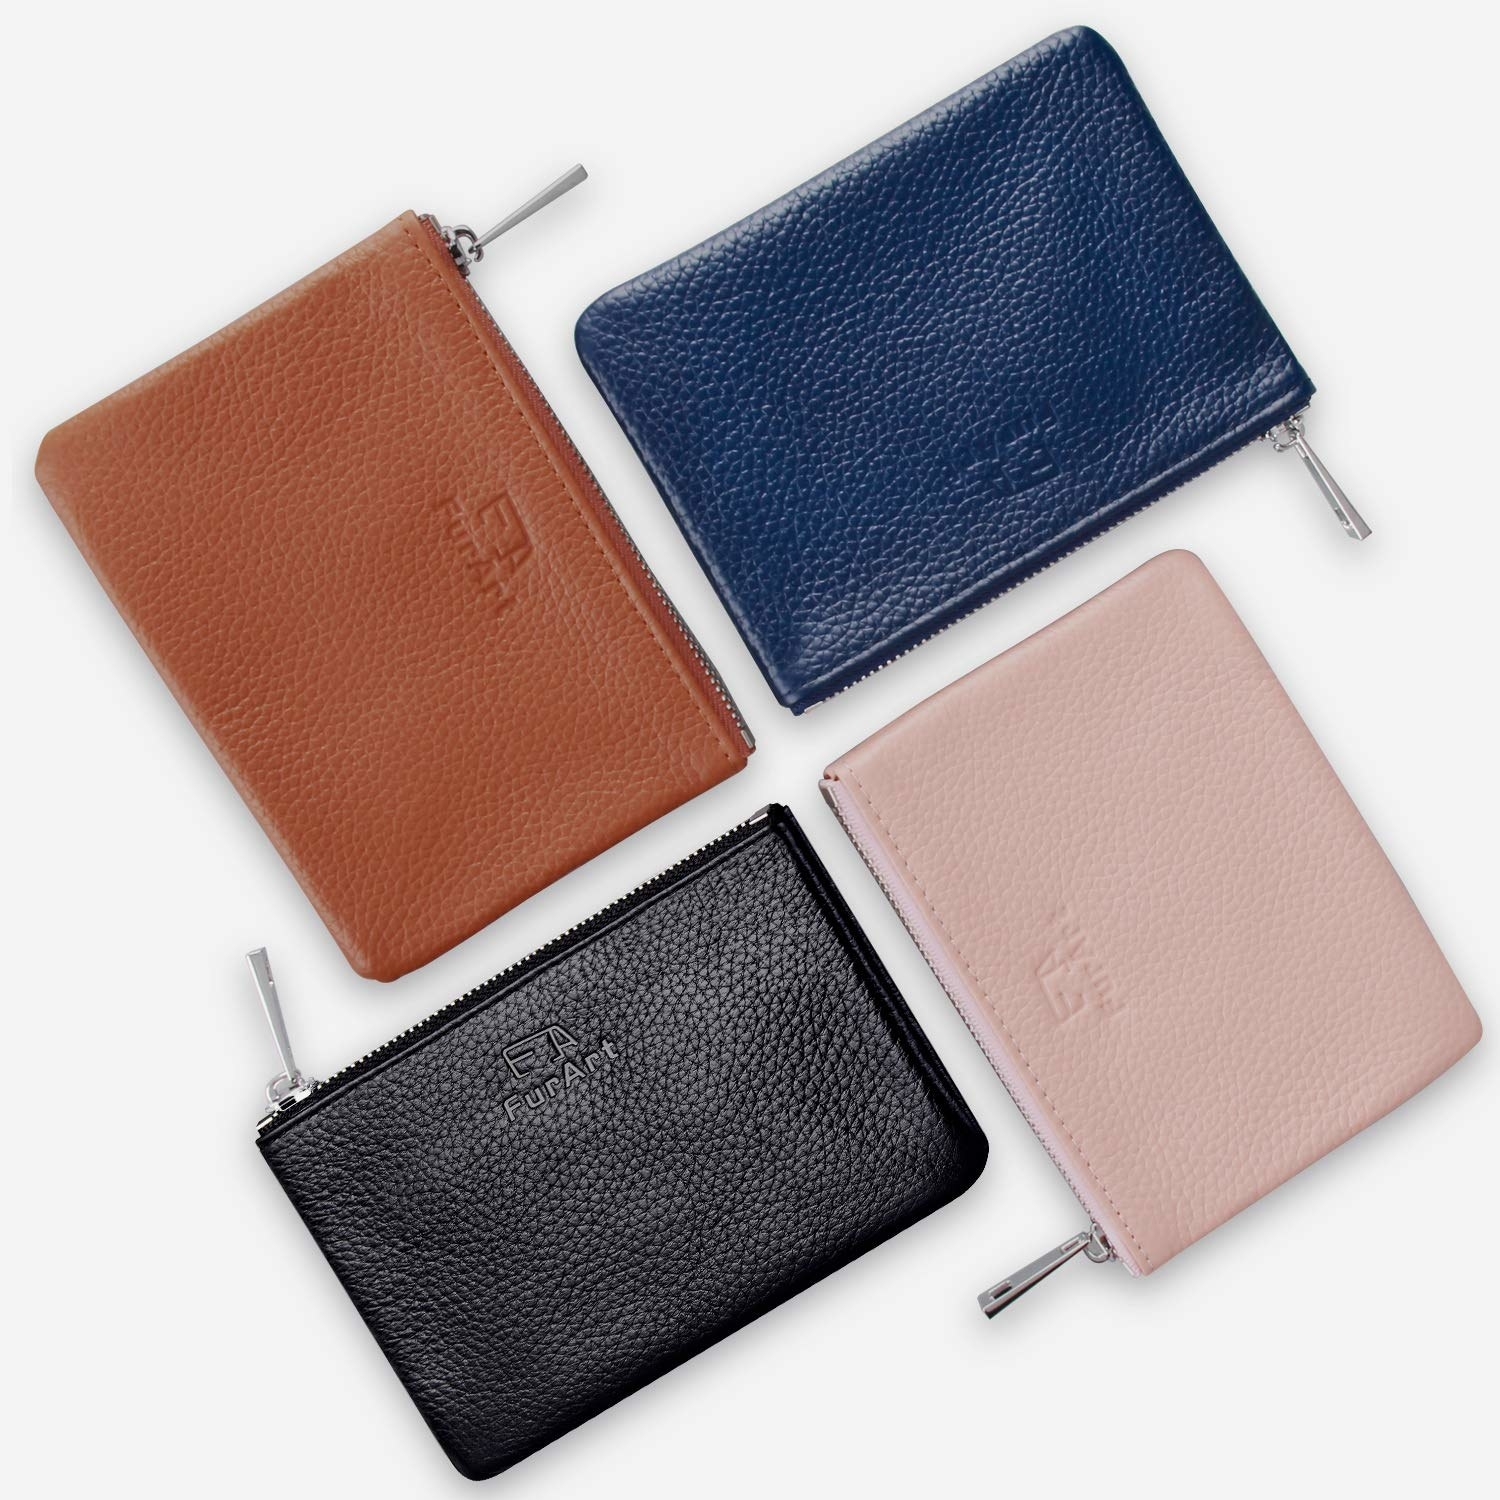 the leather coin purses in black camel blush pink and navy